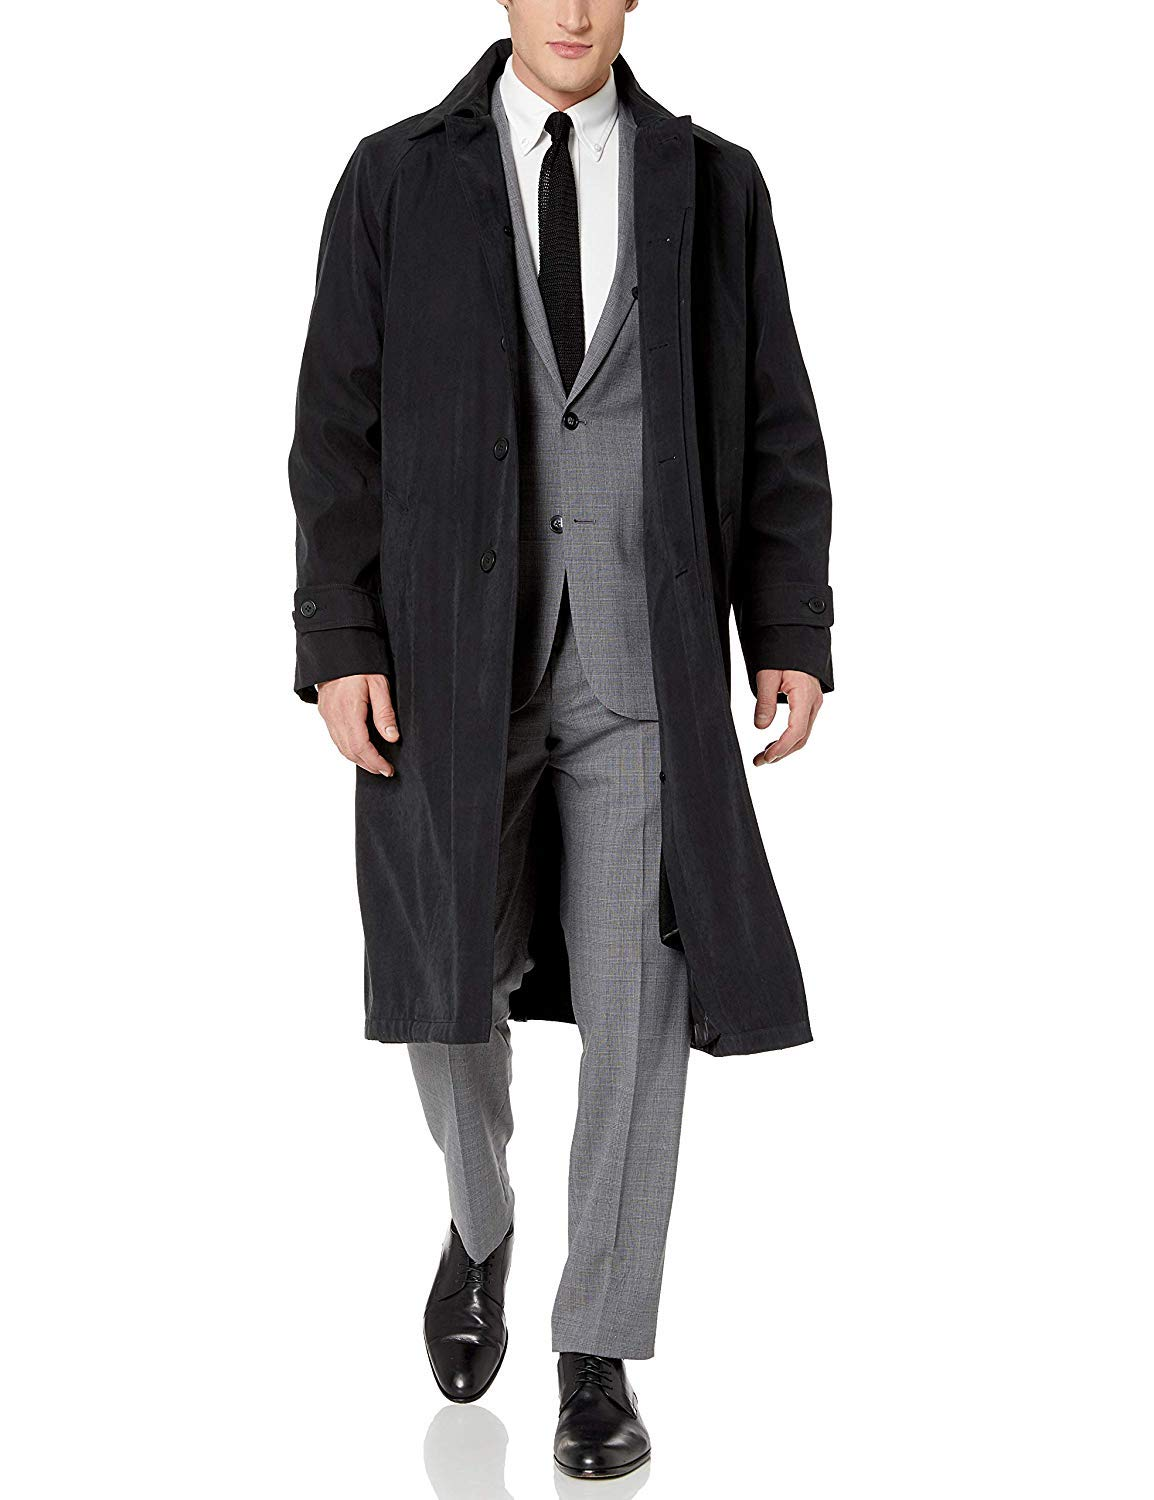 Adam Baker by Cianni Men's Single Breasted Black Full Length All Year Round Raincoat 40R by Adam Baker